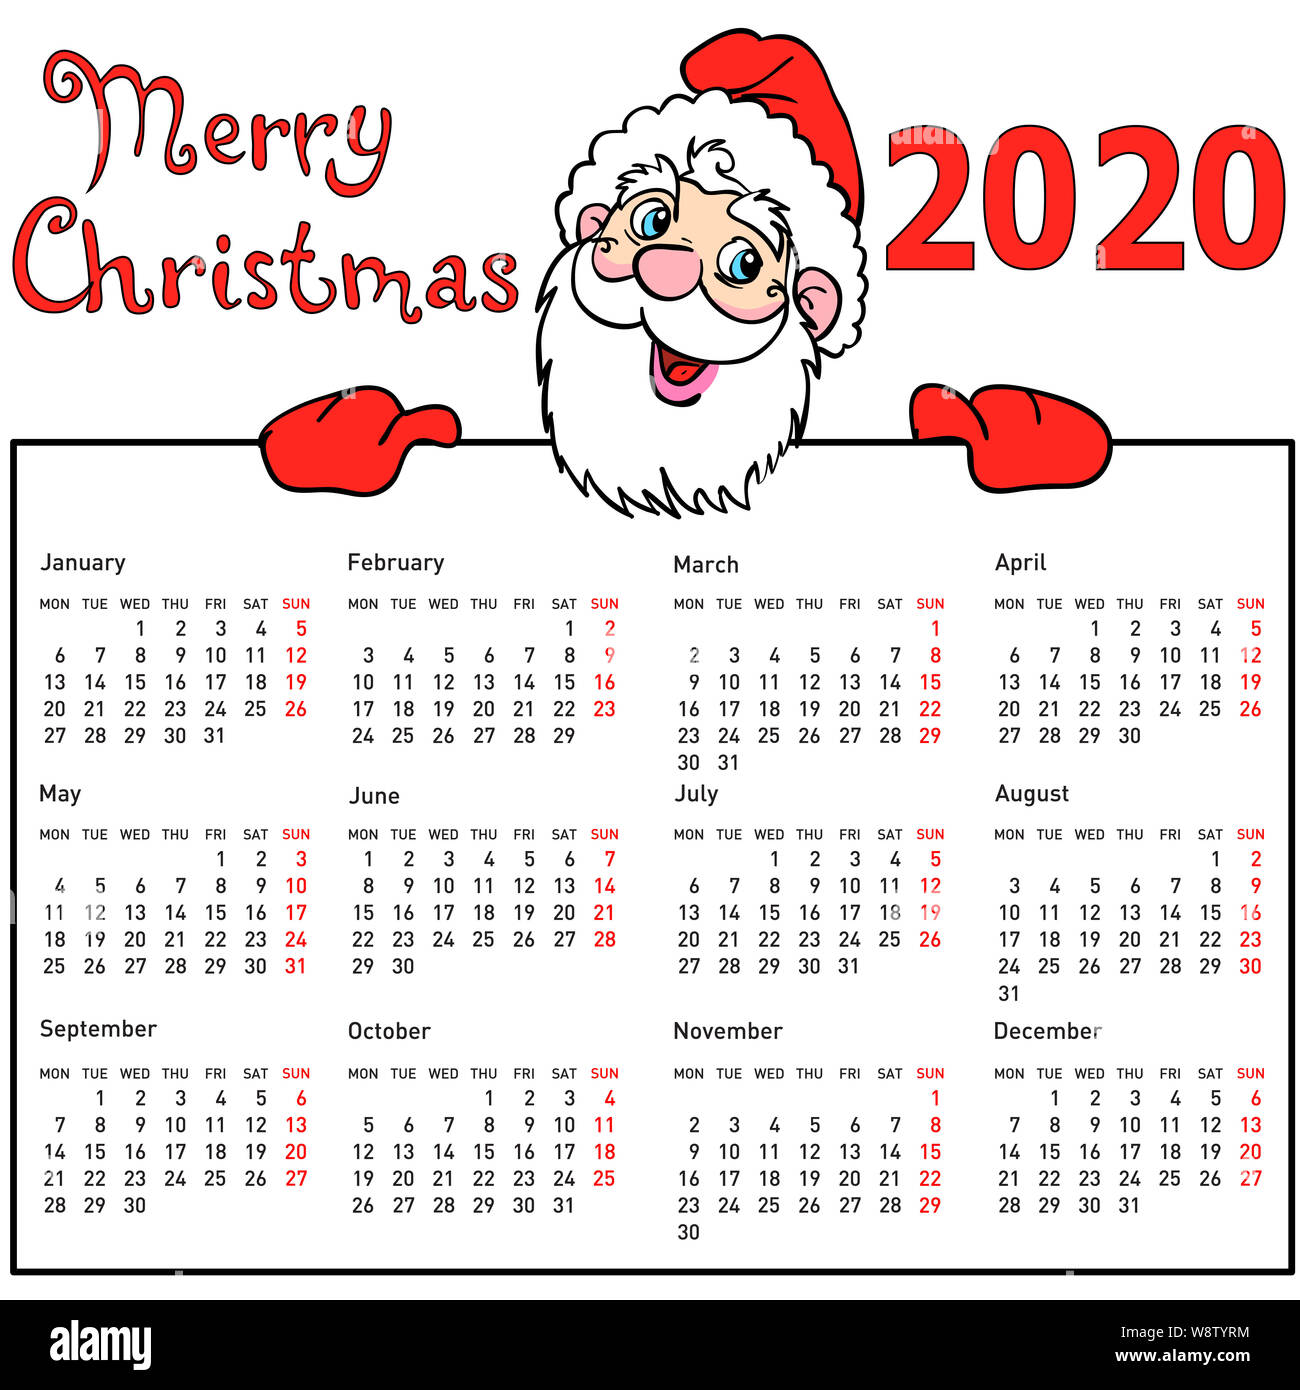 Christmas Santa Claus In July Sales 2020 Stylish calendar withmuscular Santa Claus for 2020 Stock Photo   Alamy